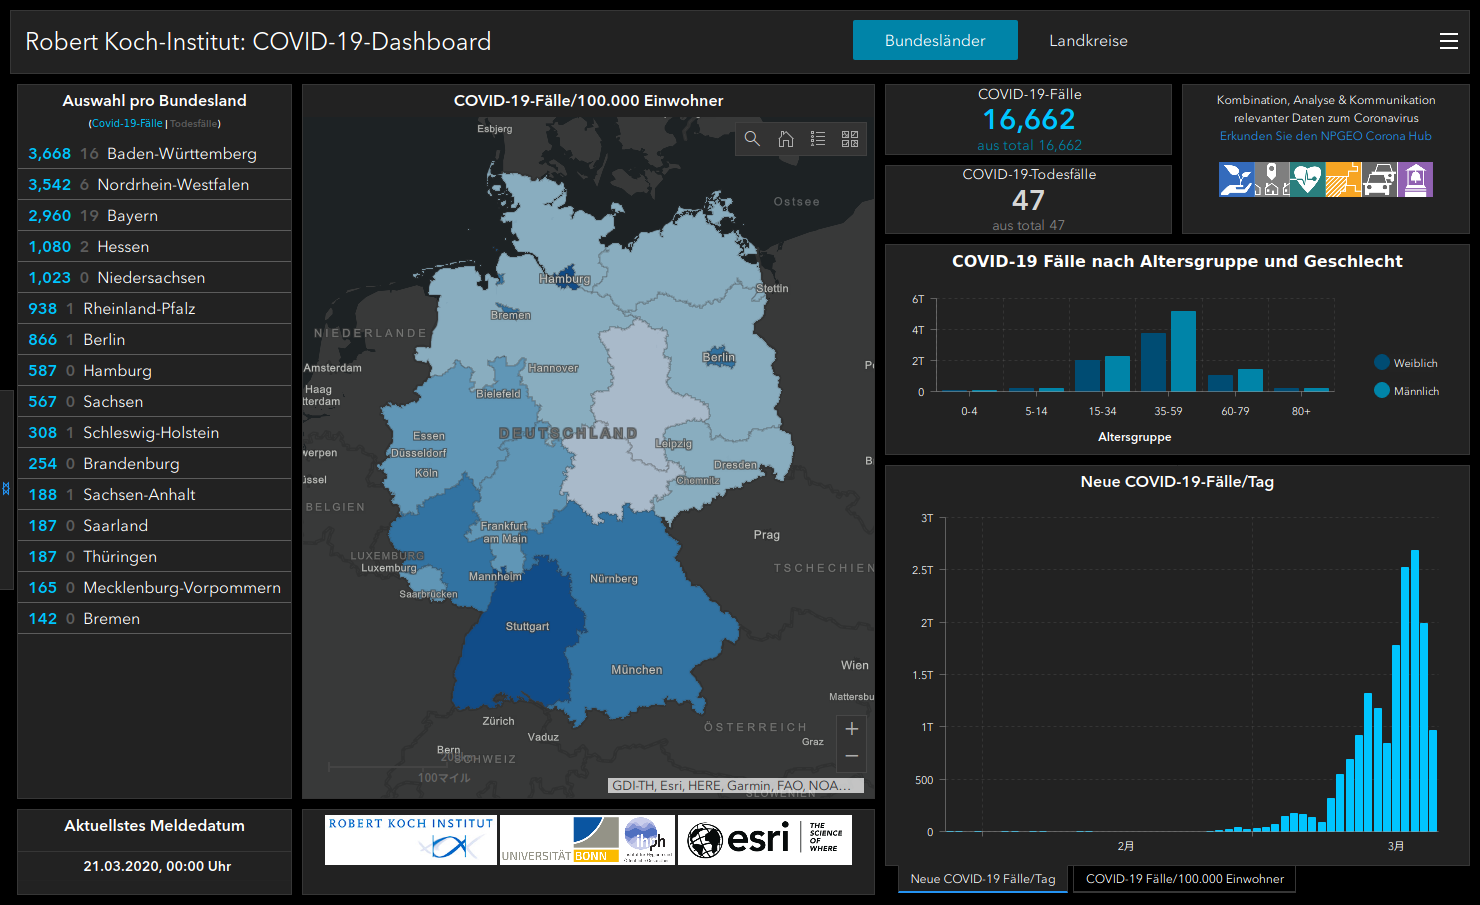 Robert Koch-Institut: COVID-19-Dashboard